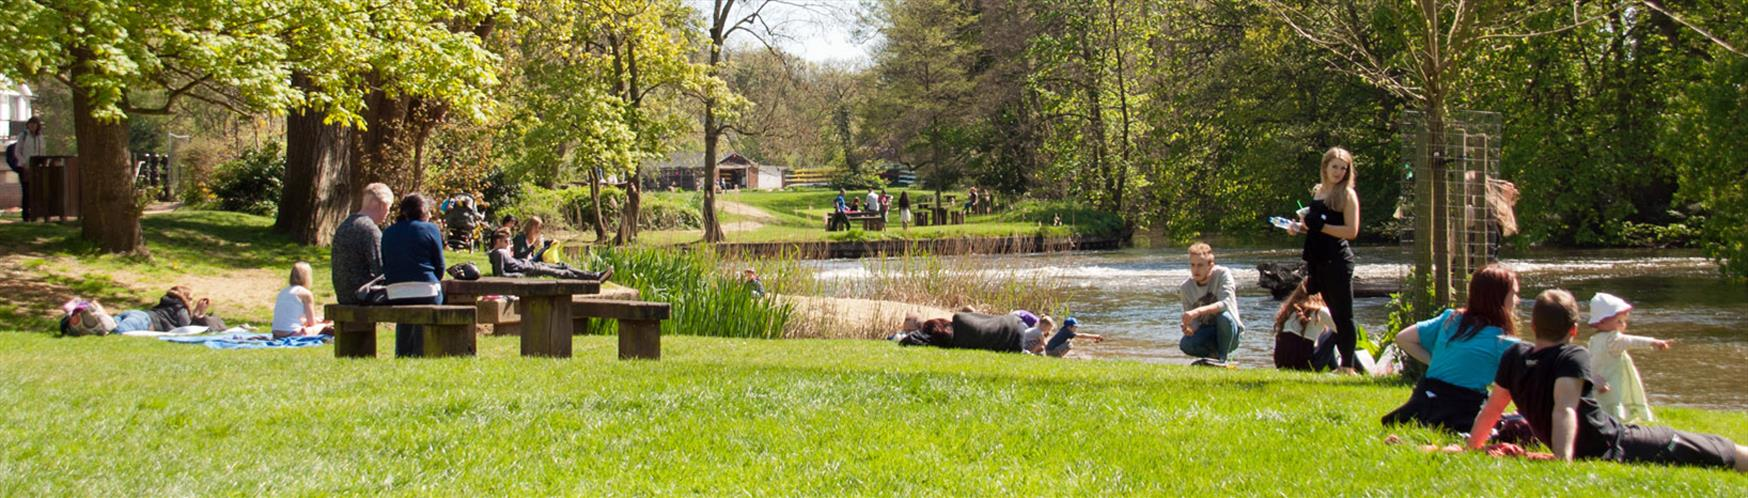 Great spot for a picnic!  River Wey, Guildford